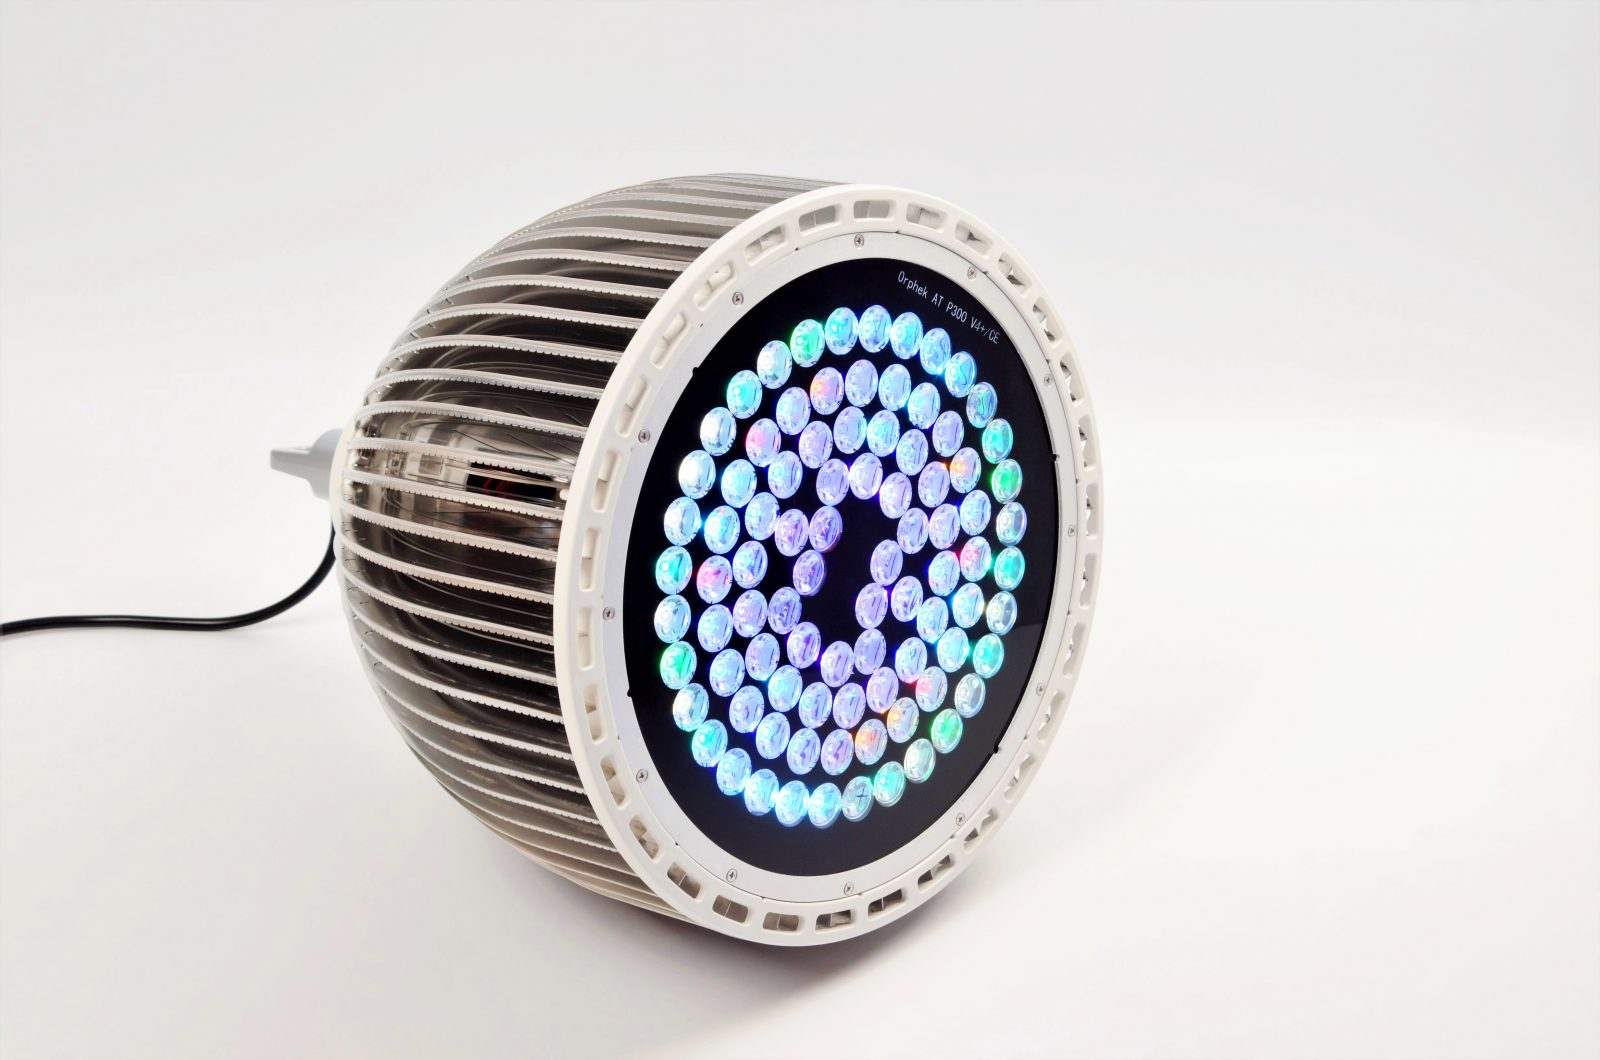 atlantik-p300-V4-plus-reef-aquarium- led-lighting